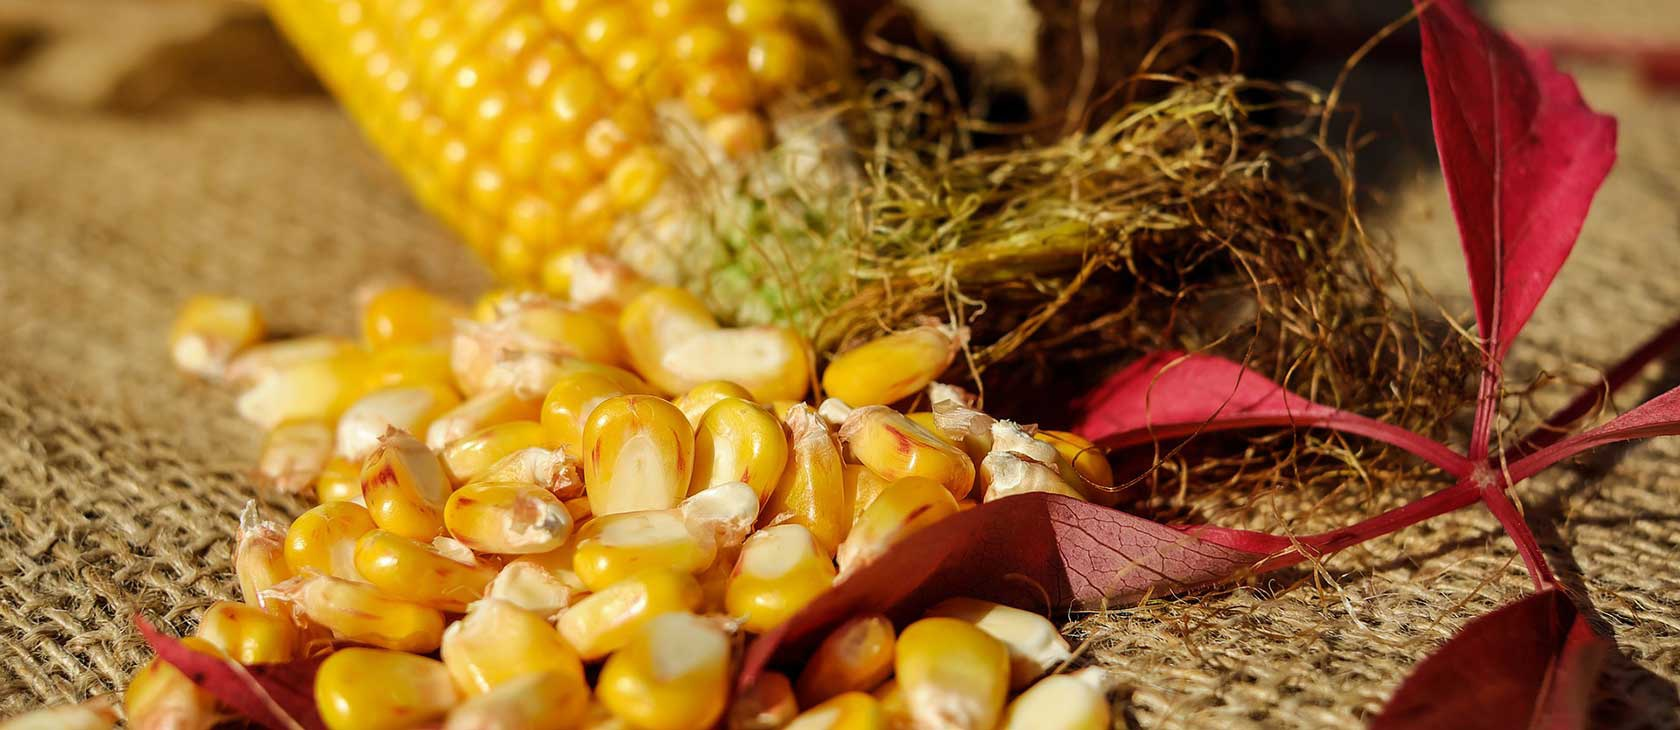 Corn subsidies at root of U S -Mexico immigration problems | Acton